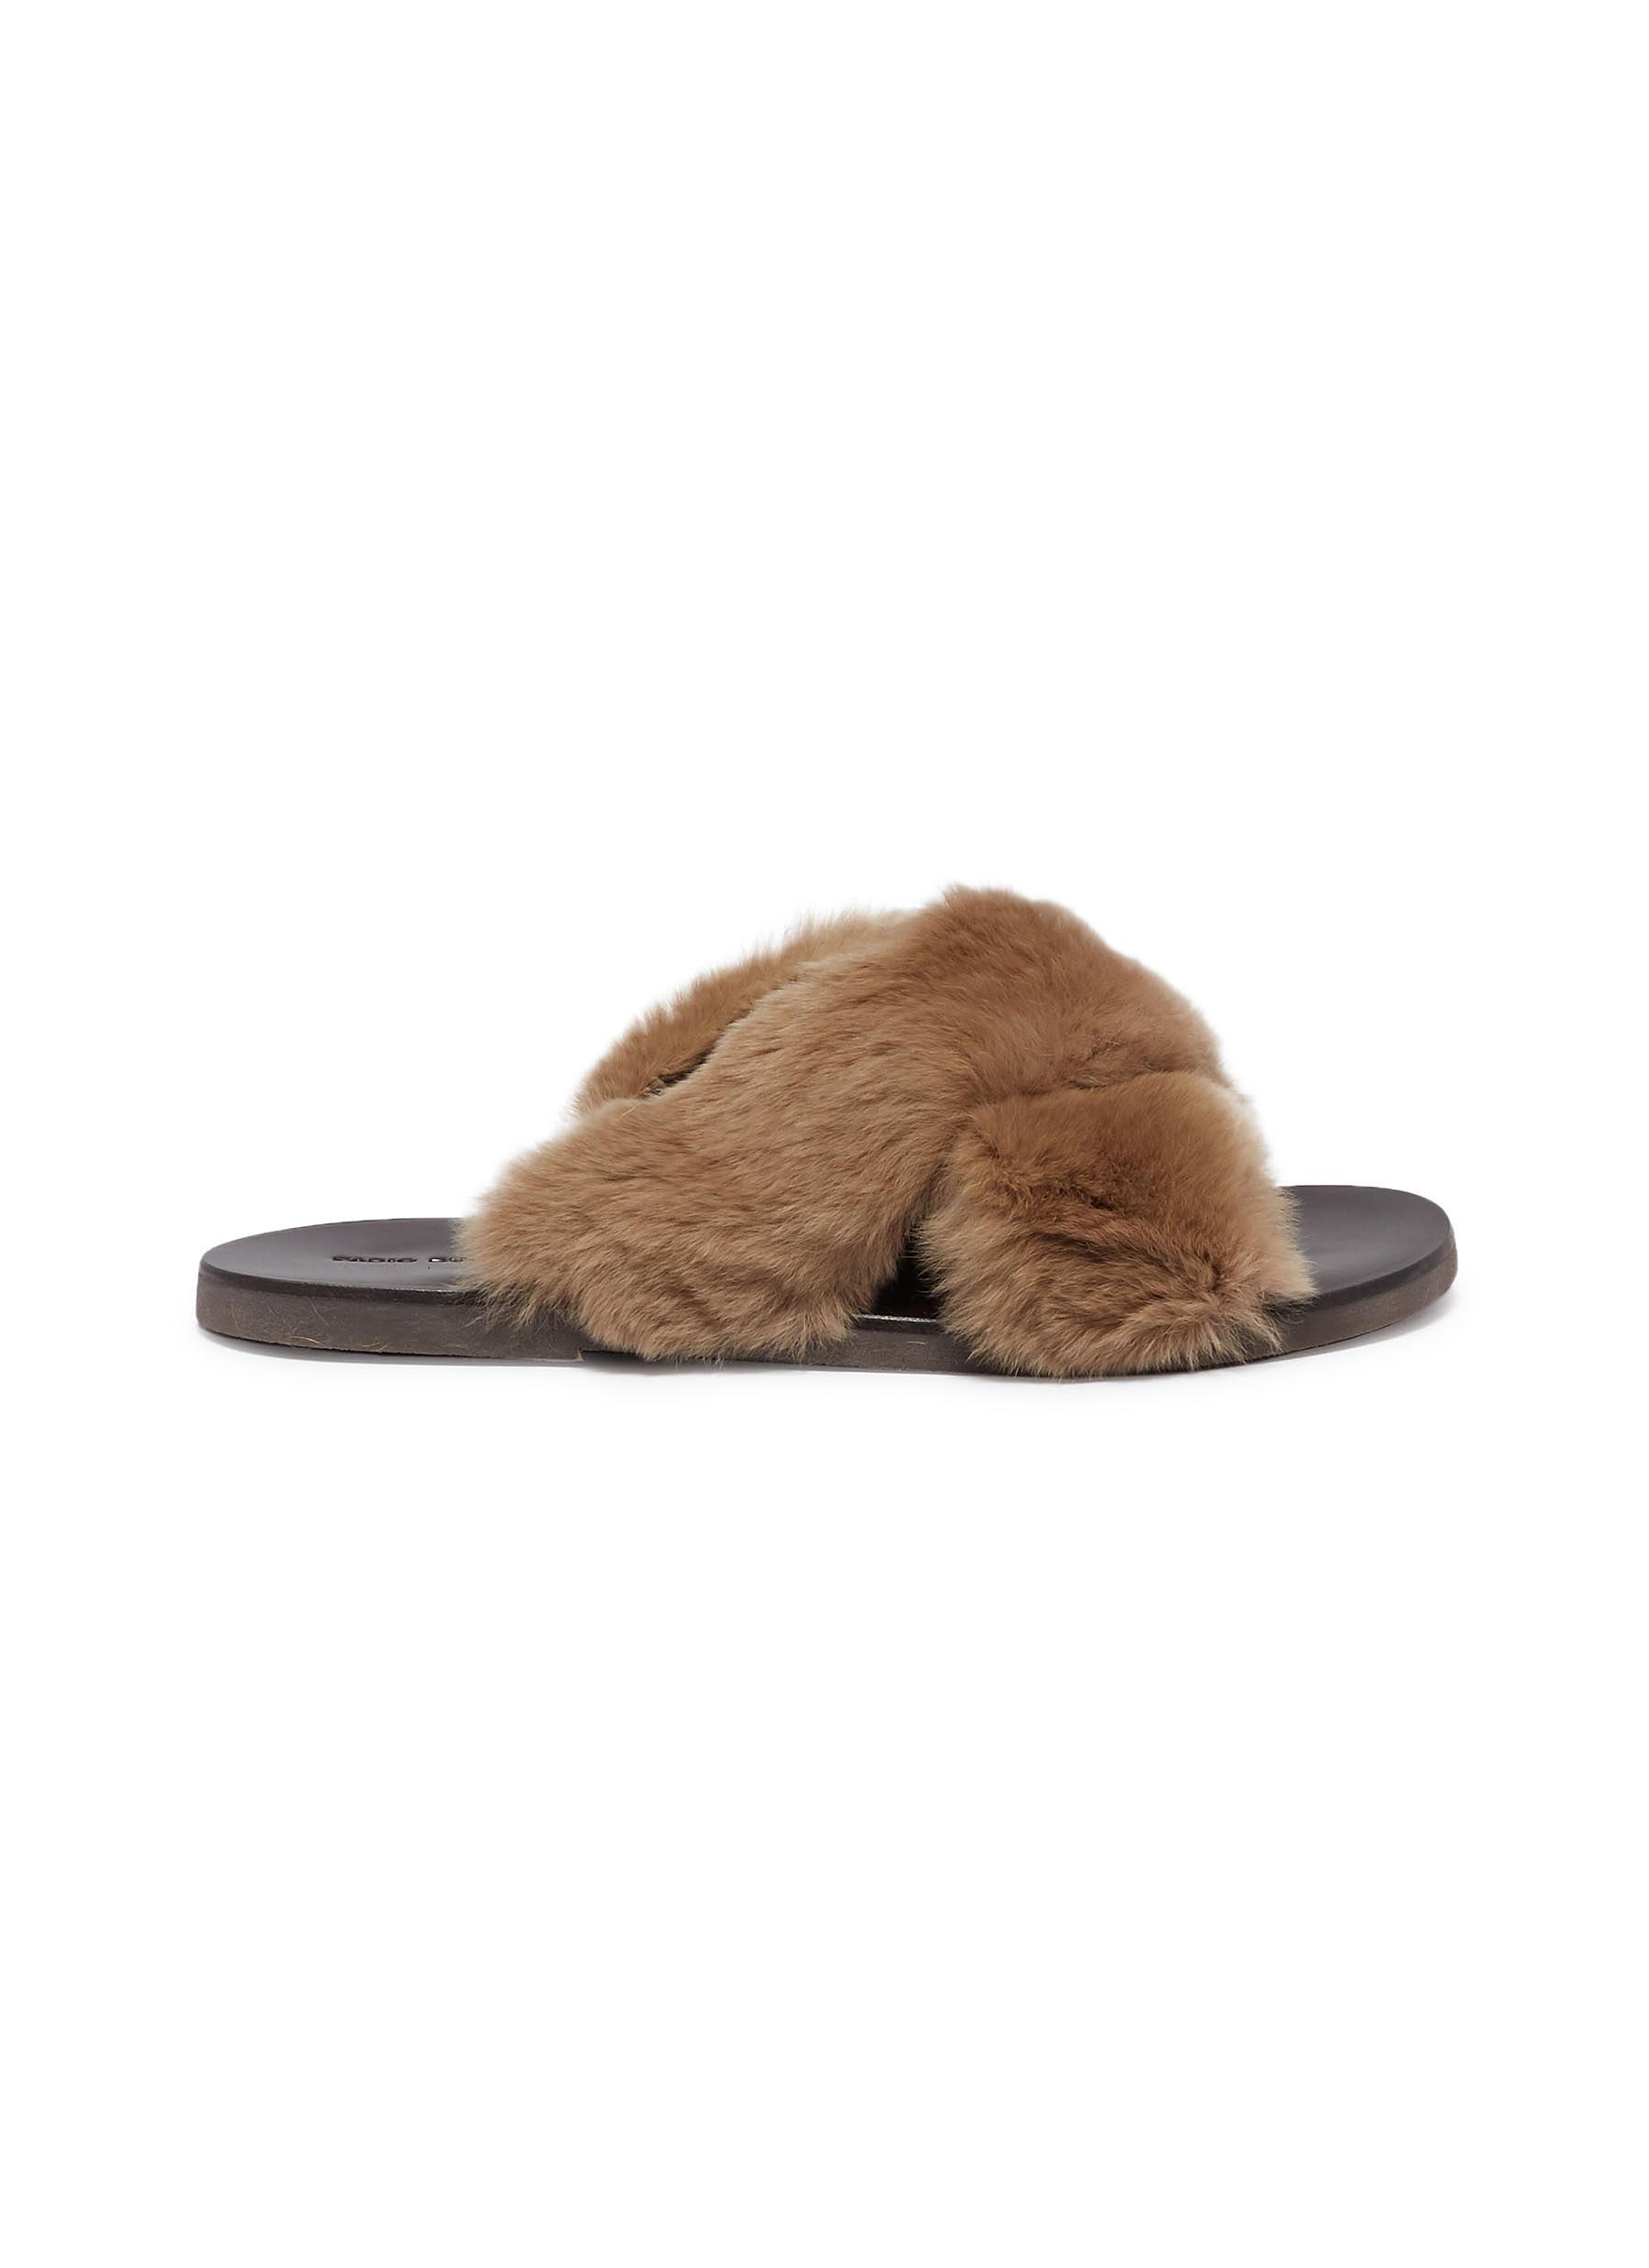 Cross strap rabbit fur slide sandals by Fabio Rusconi